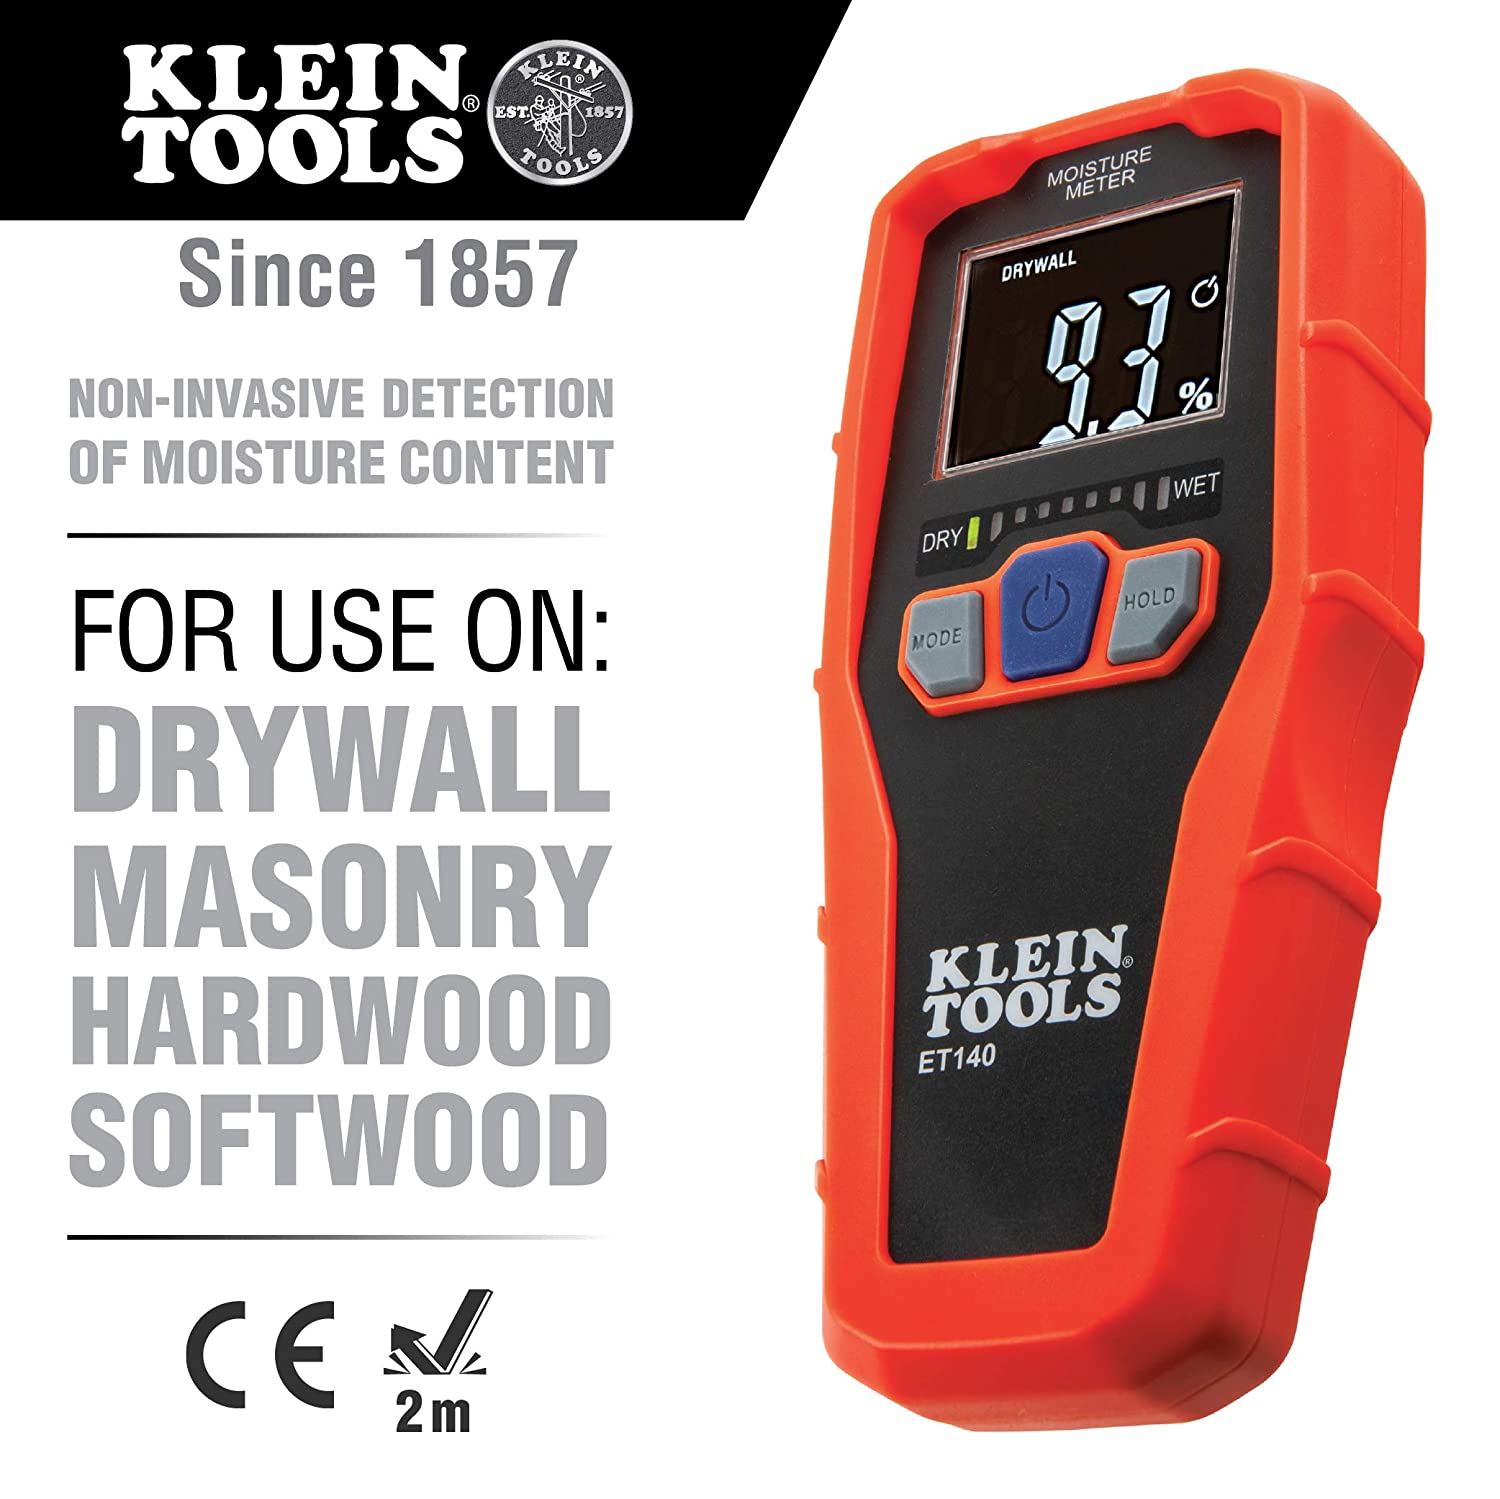 Klein Tools ET140 Pinless Moisture Meter for Non-Destructive Moisture Detection in Drywall, Wood, and Masonry Detects up to 3 4-Inch Below Surface